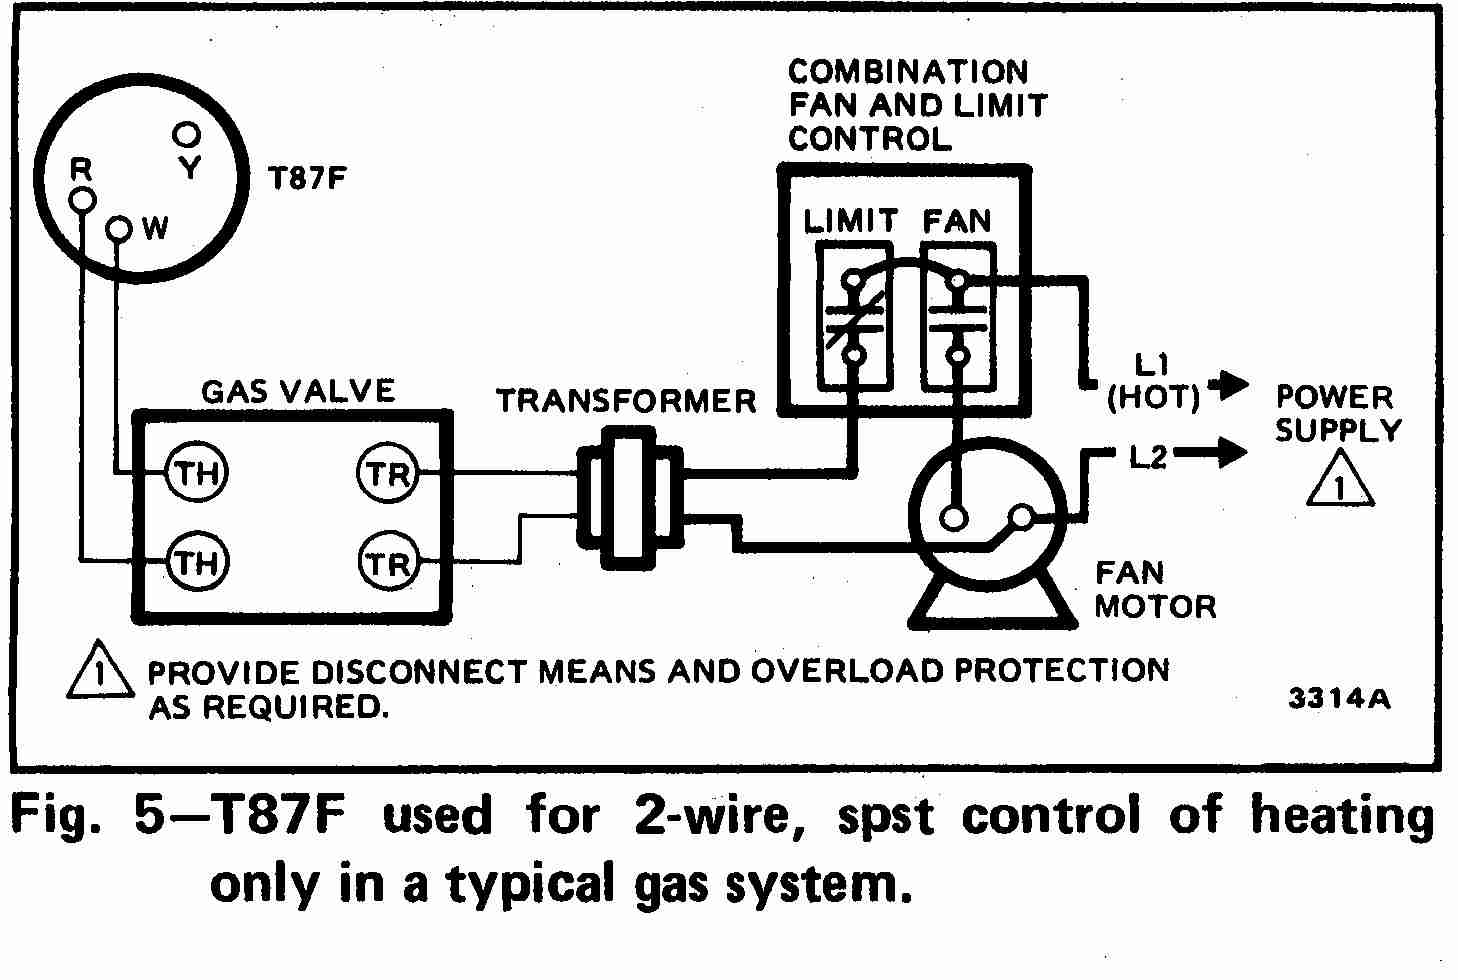 Guide To Wiring Connections For Room Thermostats 2wire Smoke Detector Diagram Honeywell T87f Thermostat 2 Wire Spst Control Of Heating Only In